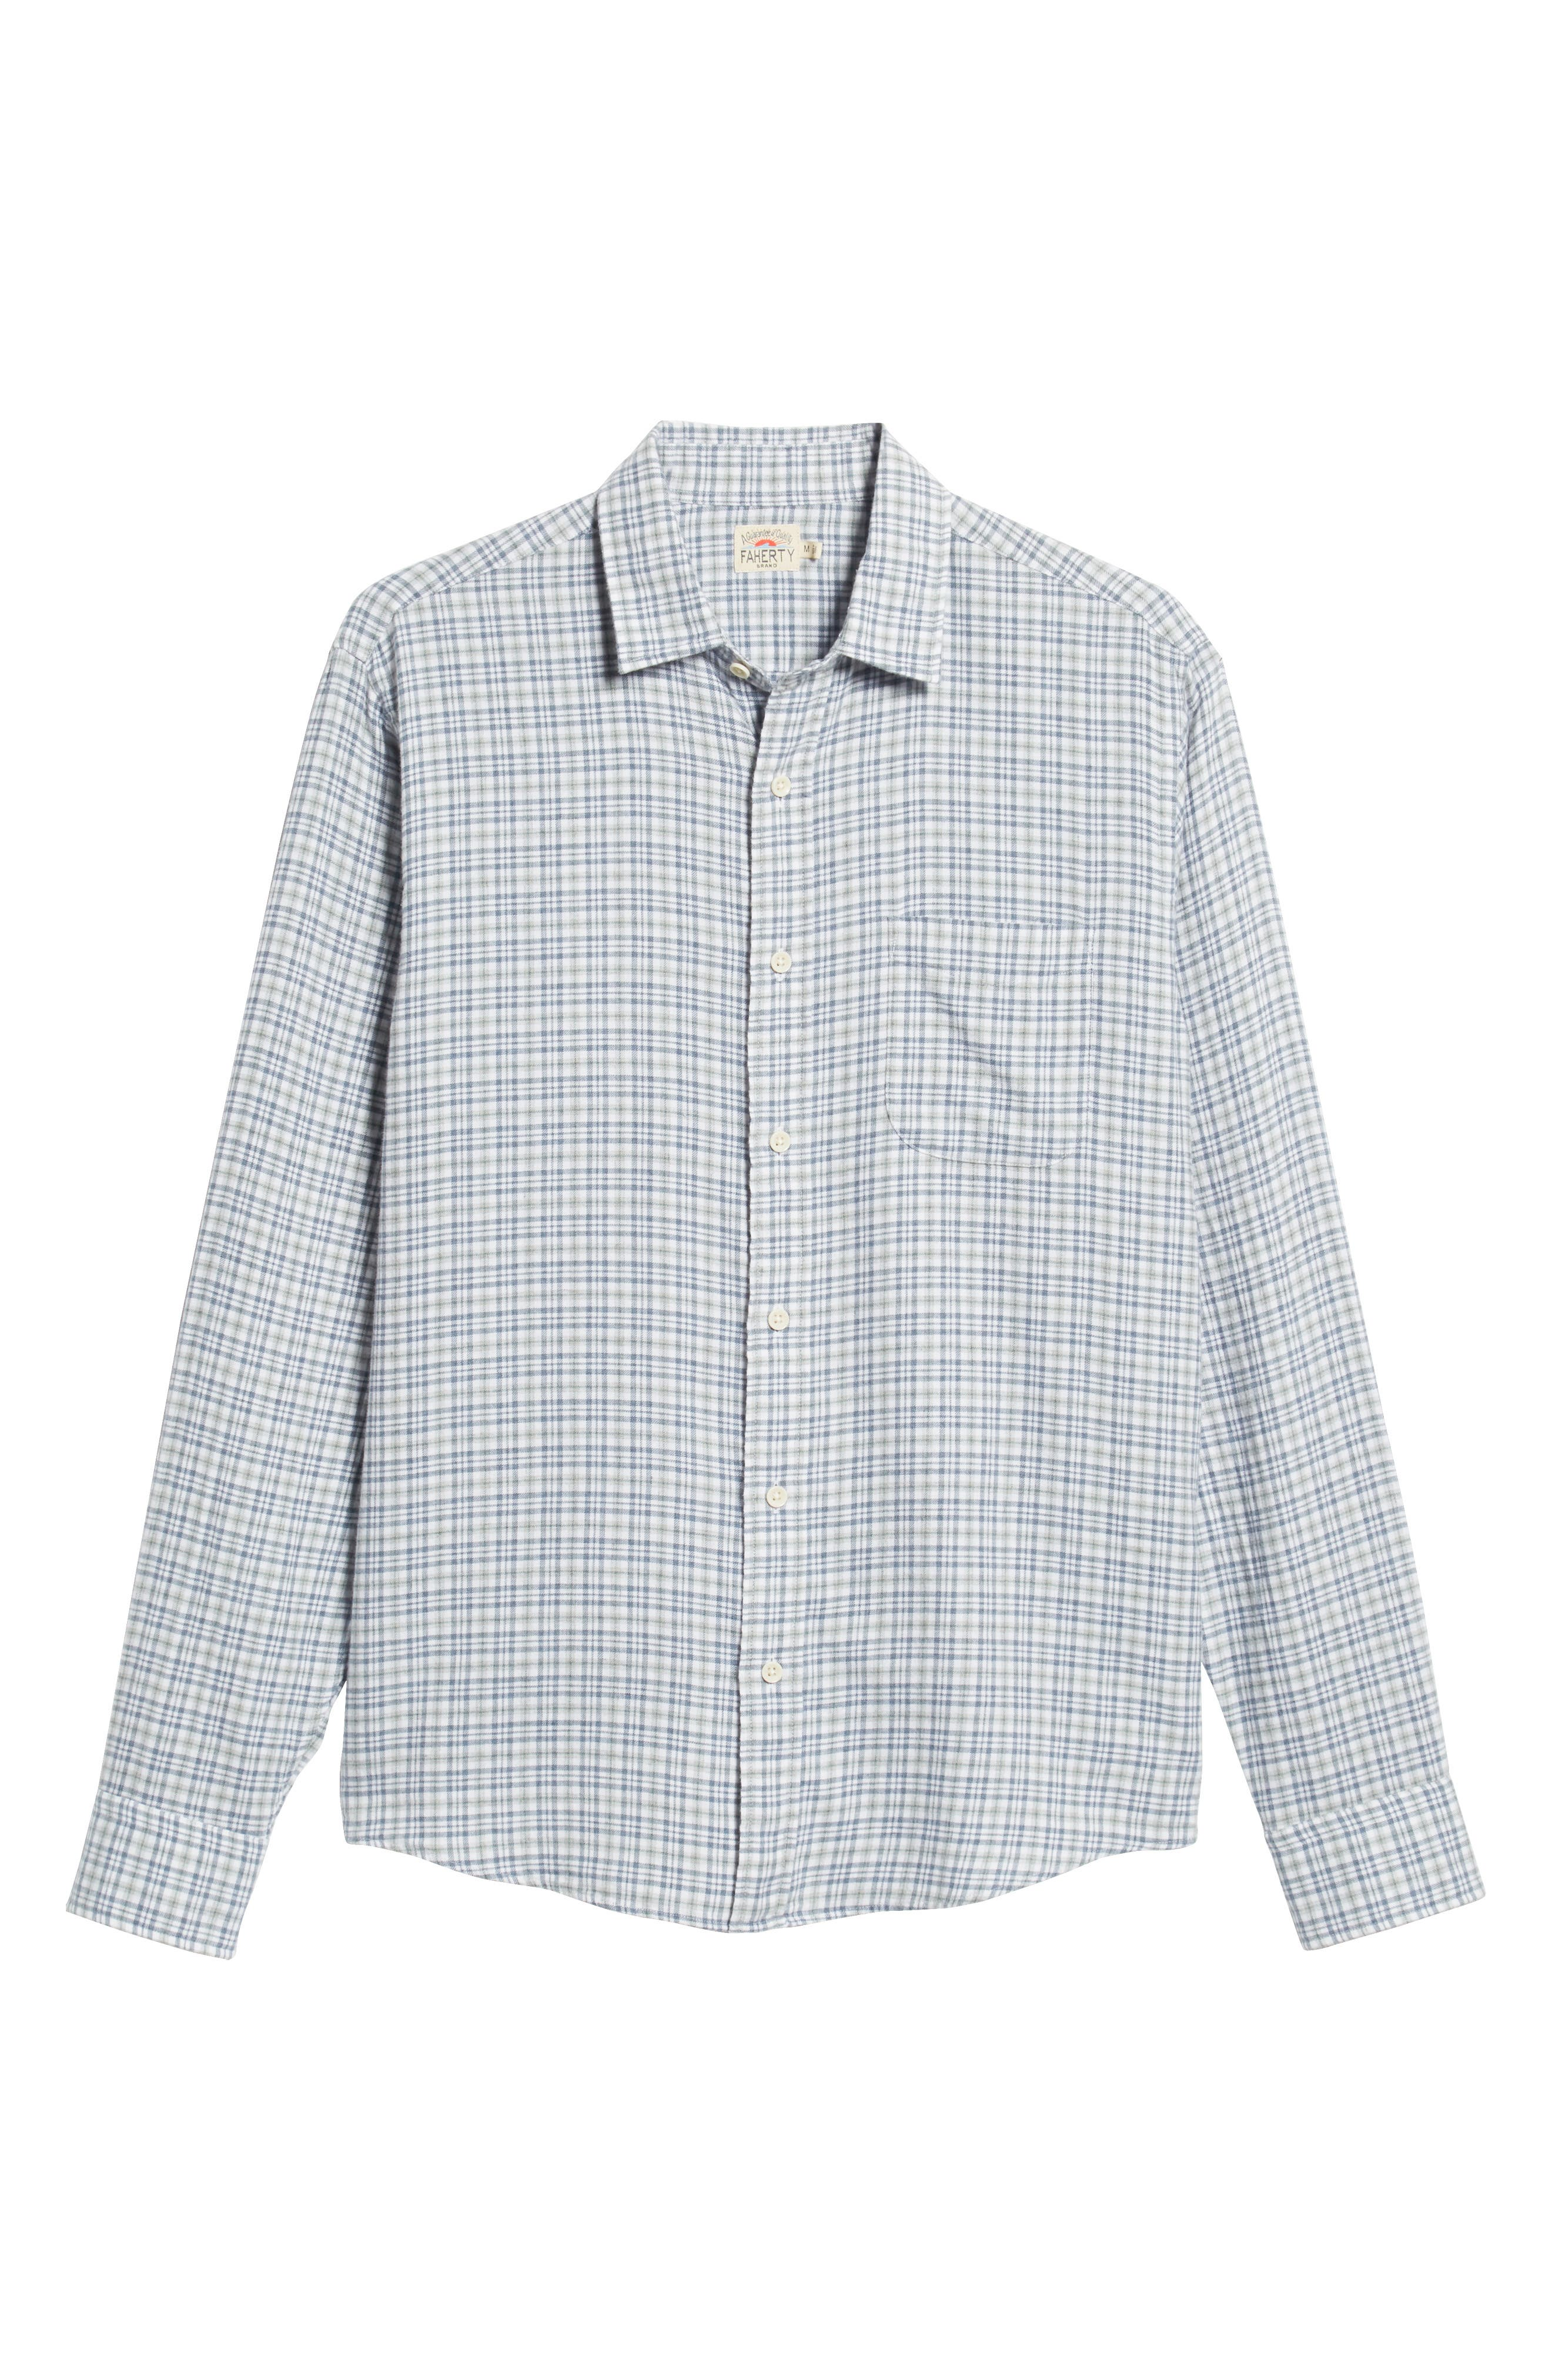 Ventura Regular Fit Plaid Sport Shirt,                             Alternate thumbnail 5, color,                             HEATHER GREY MULTI